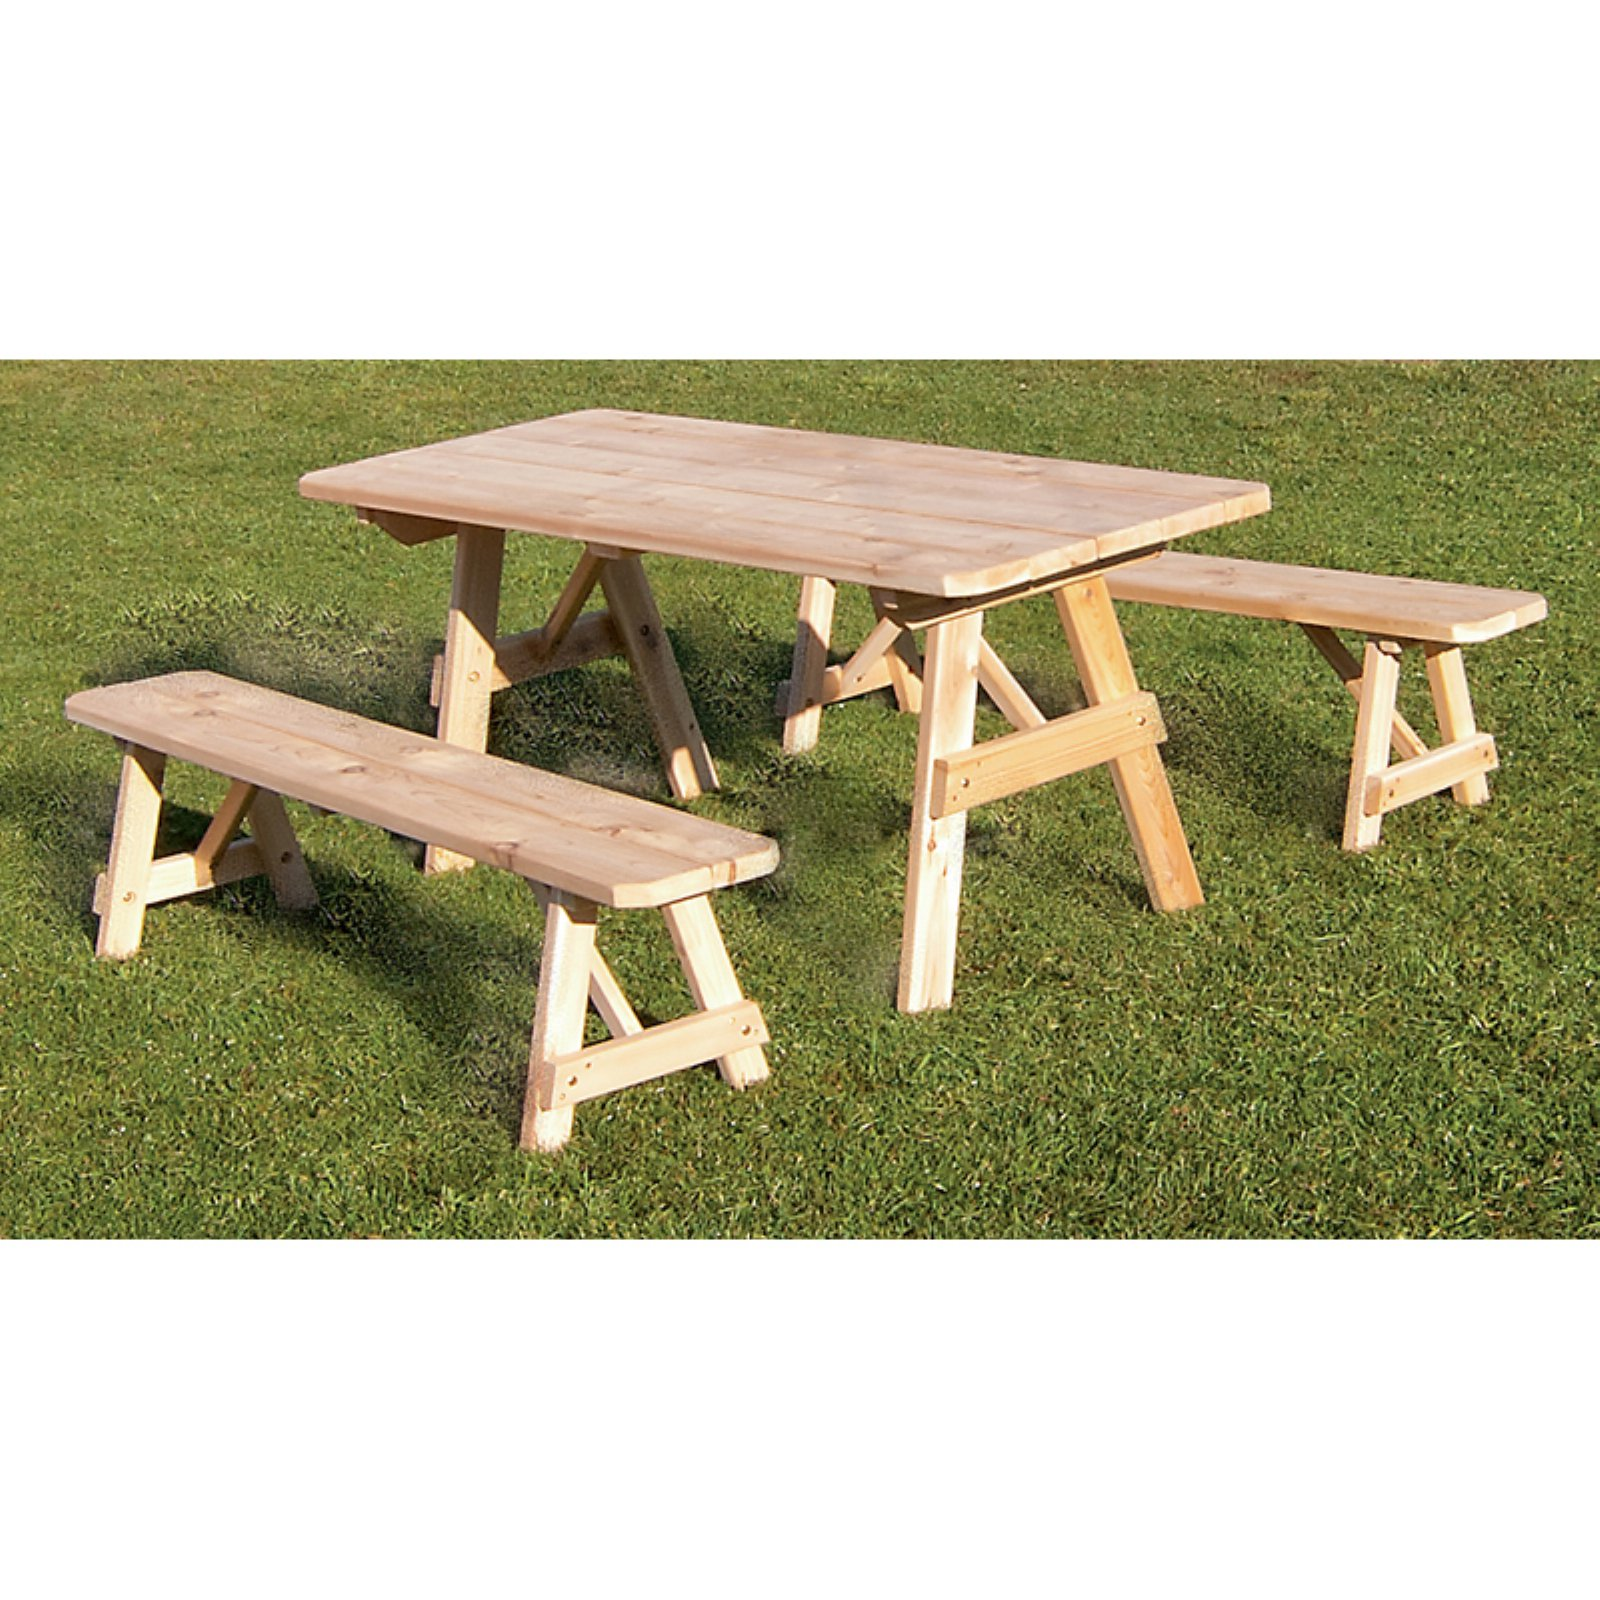 A & L Furniture Western Red Cedar Traditional Picnic Table with 2 Side Benches